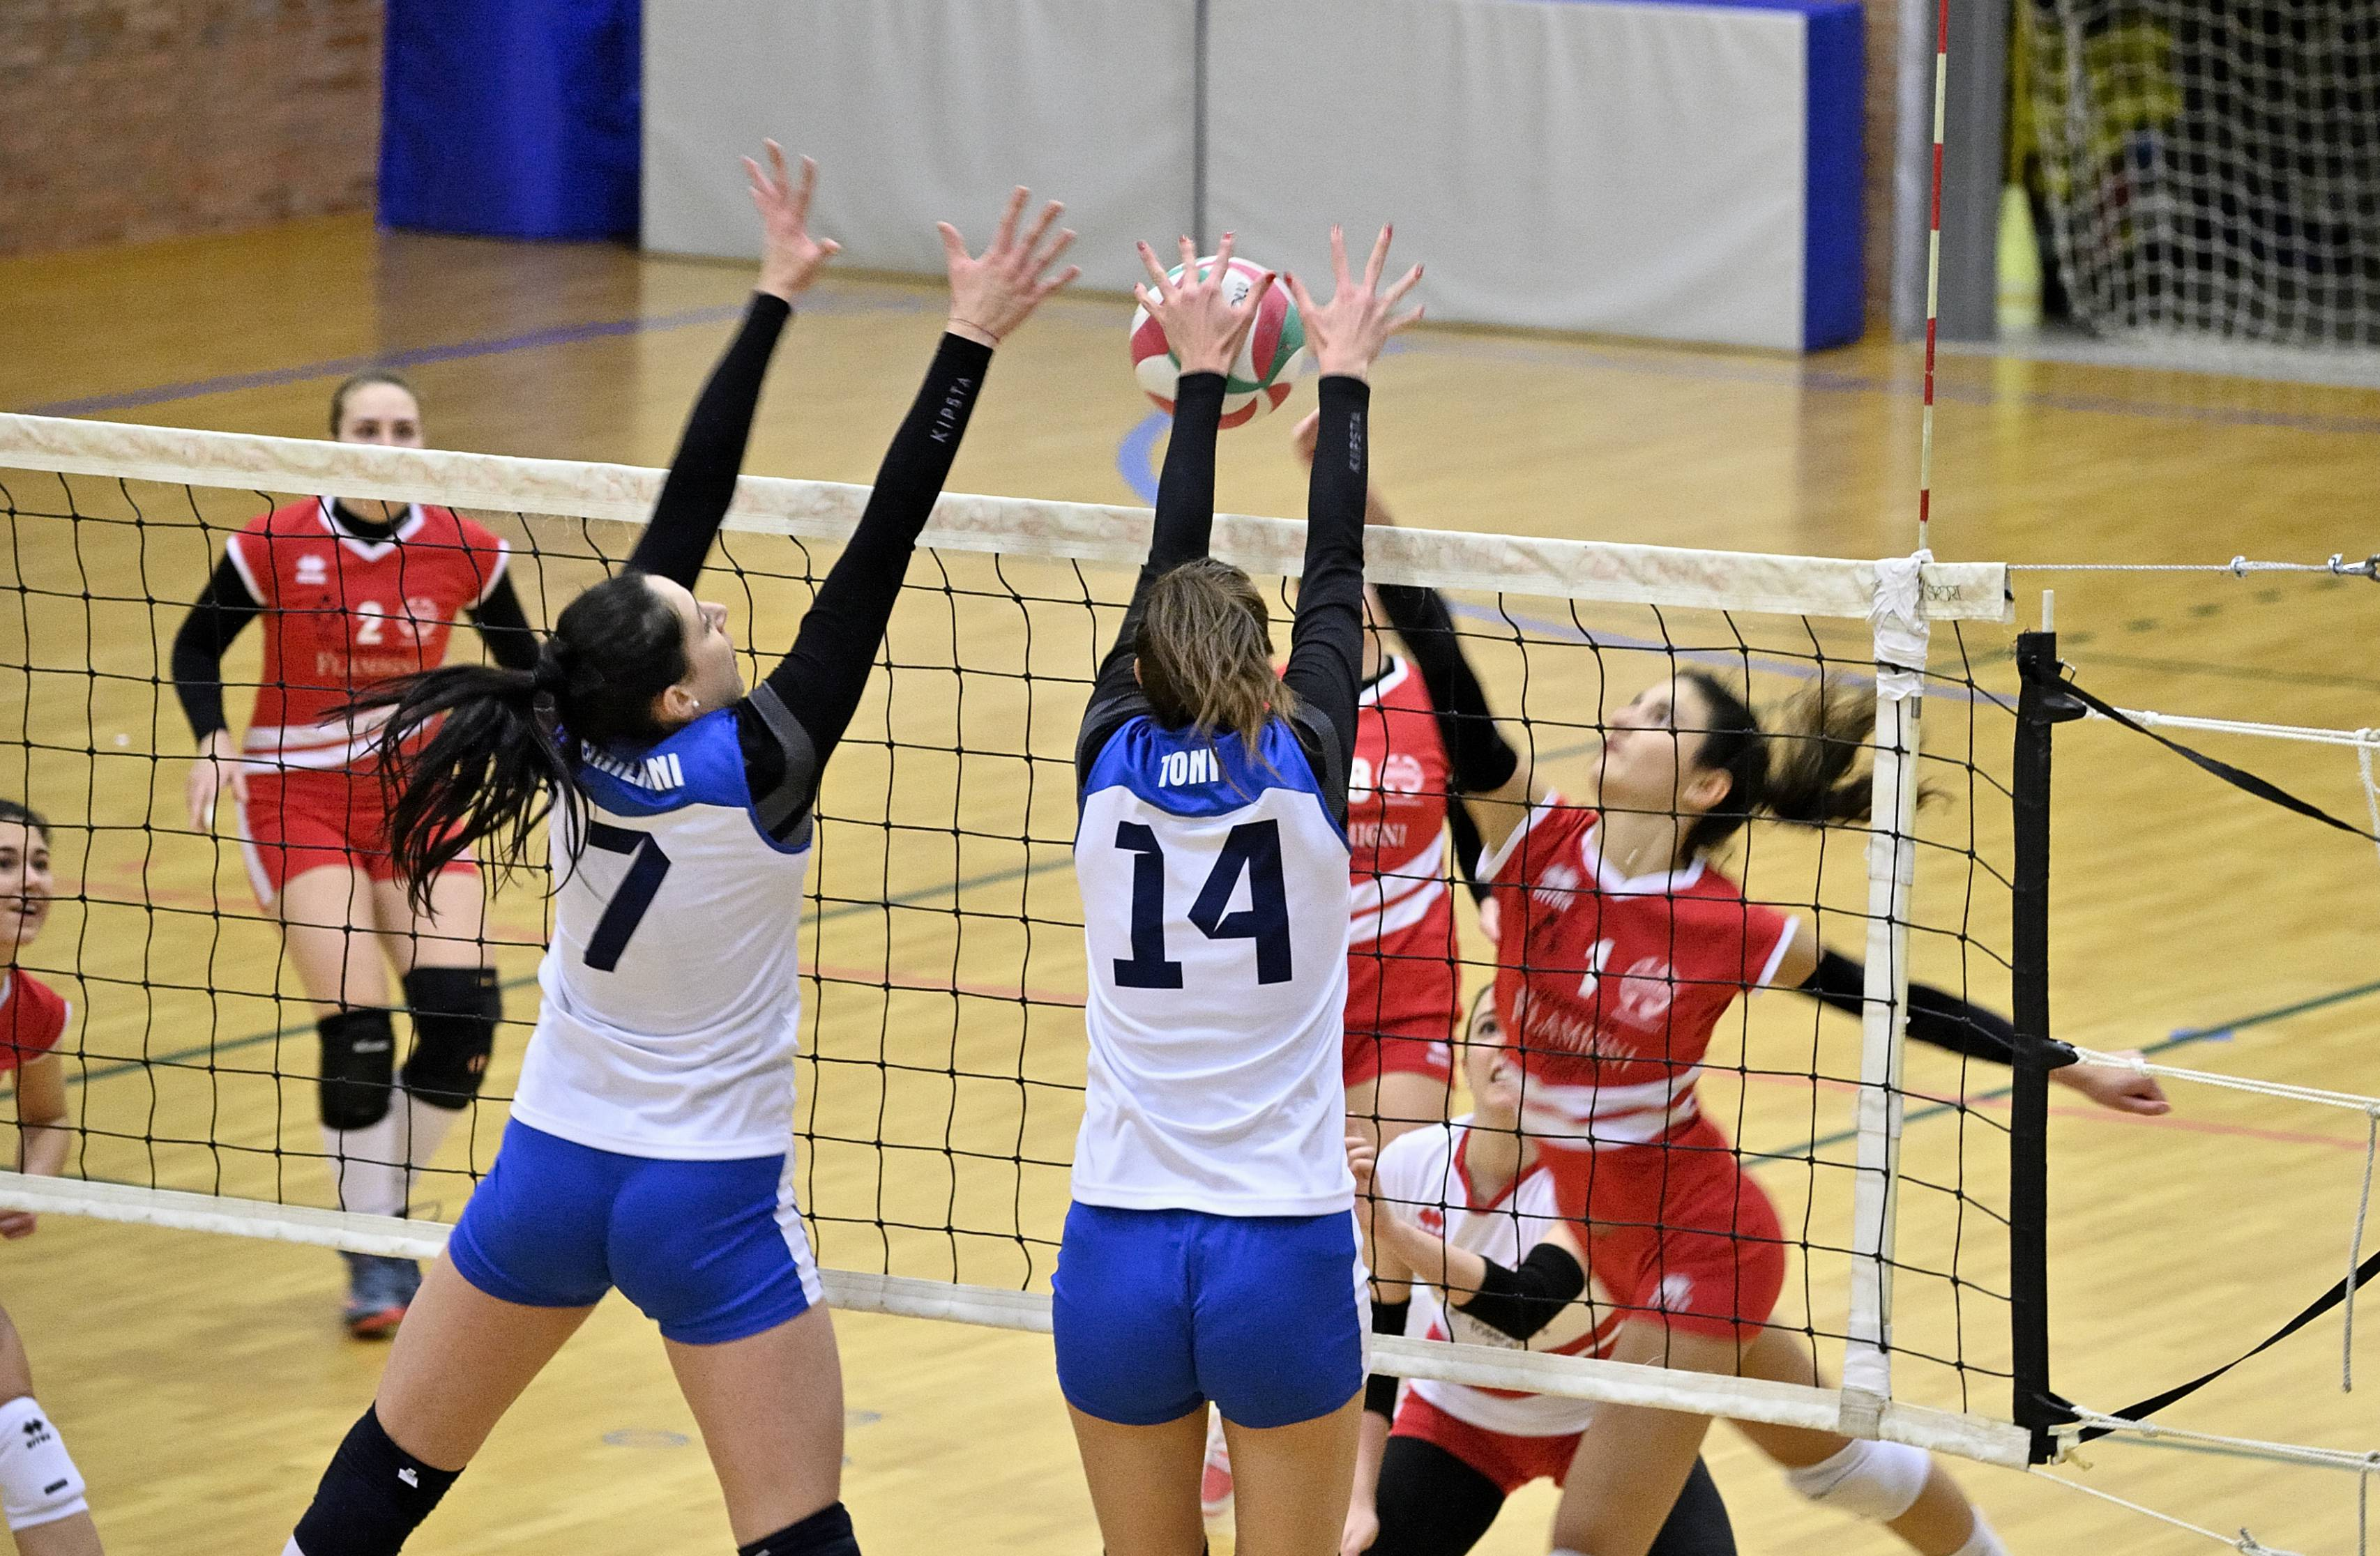 Libertas-Claus-Volley-Forlì